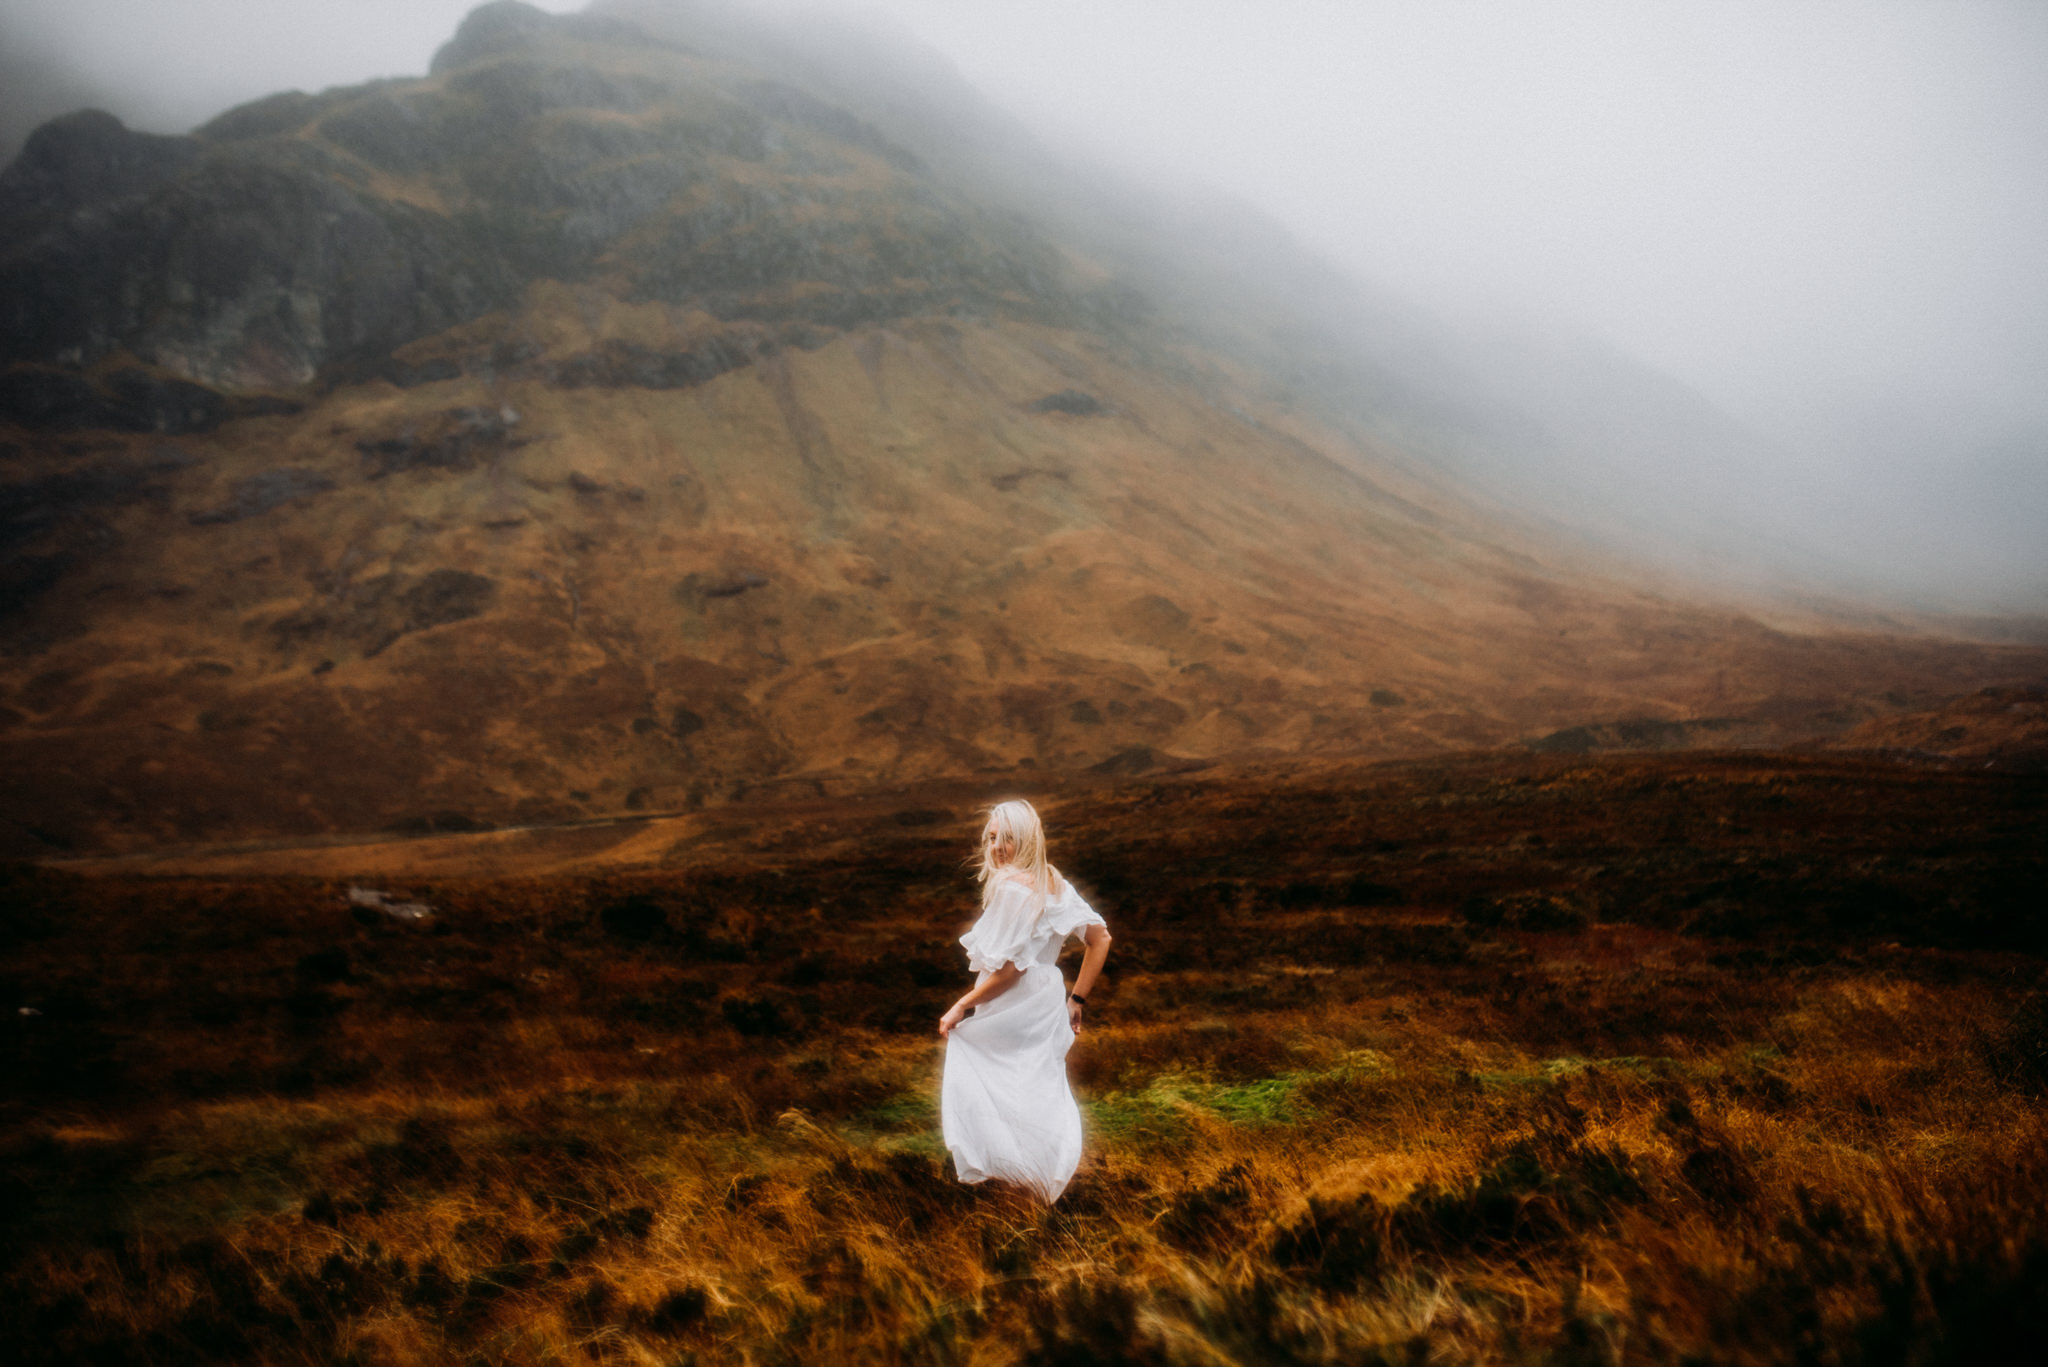 A woman is walking through a meadow next to mountains.